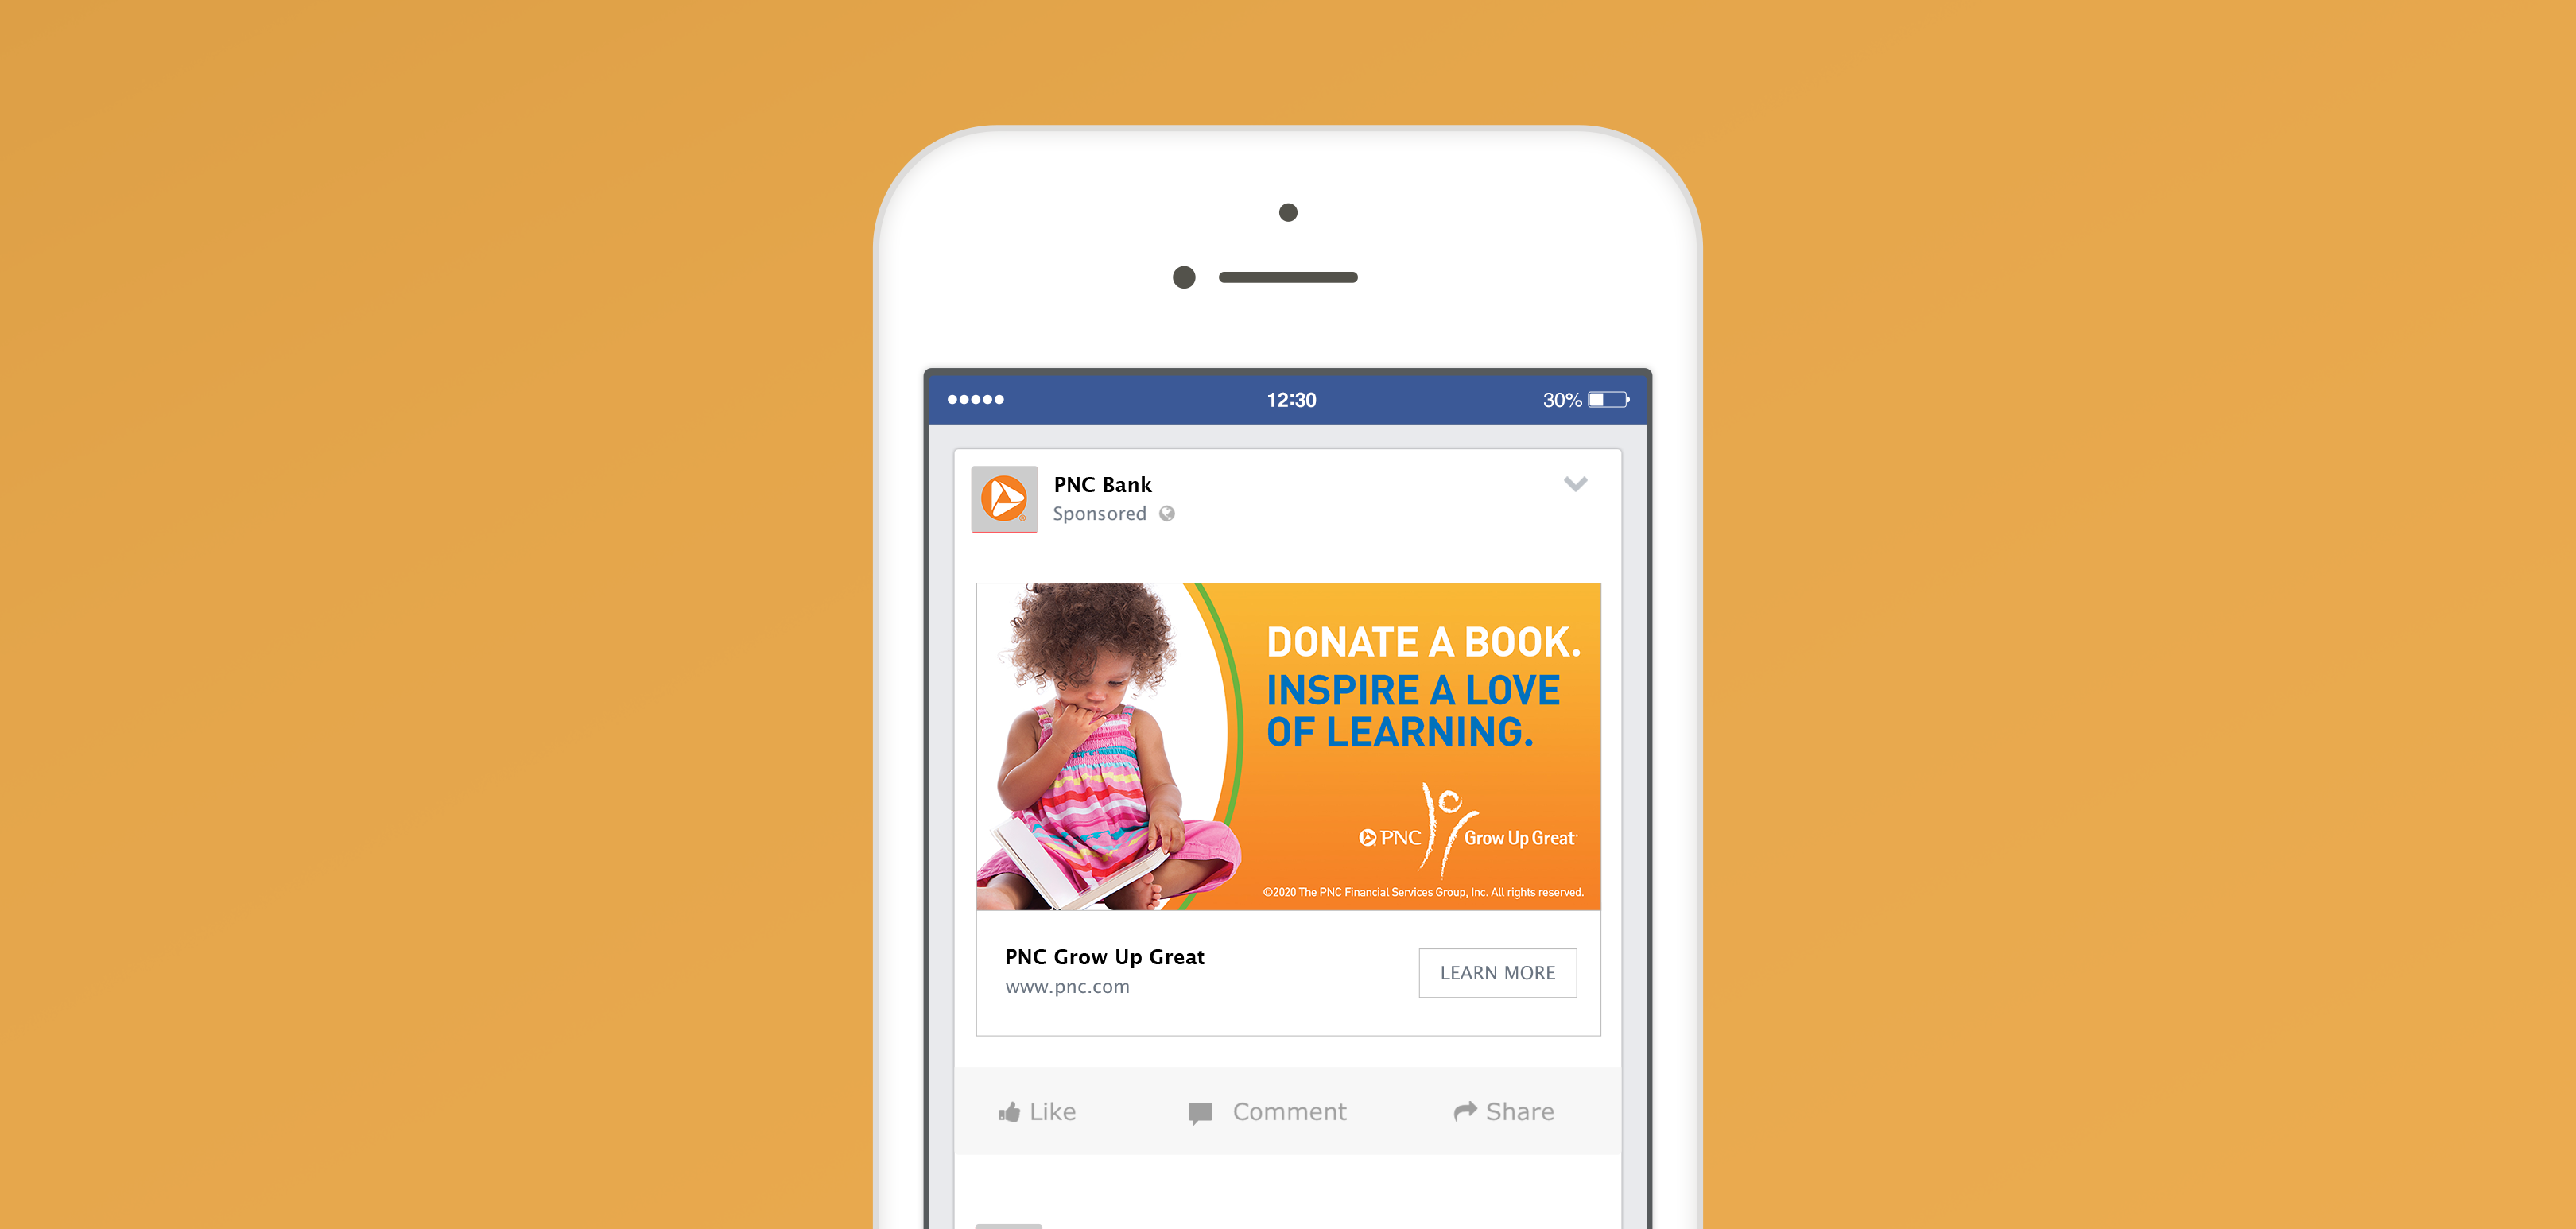 """A mockup of an iPhone over a mustard background. The phone features a Facebook post that consists of a yellow-orange gradient background and an image of a child holding a book. The image headline is """"Donate a book. Inspire a love of learning."""""""